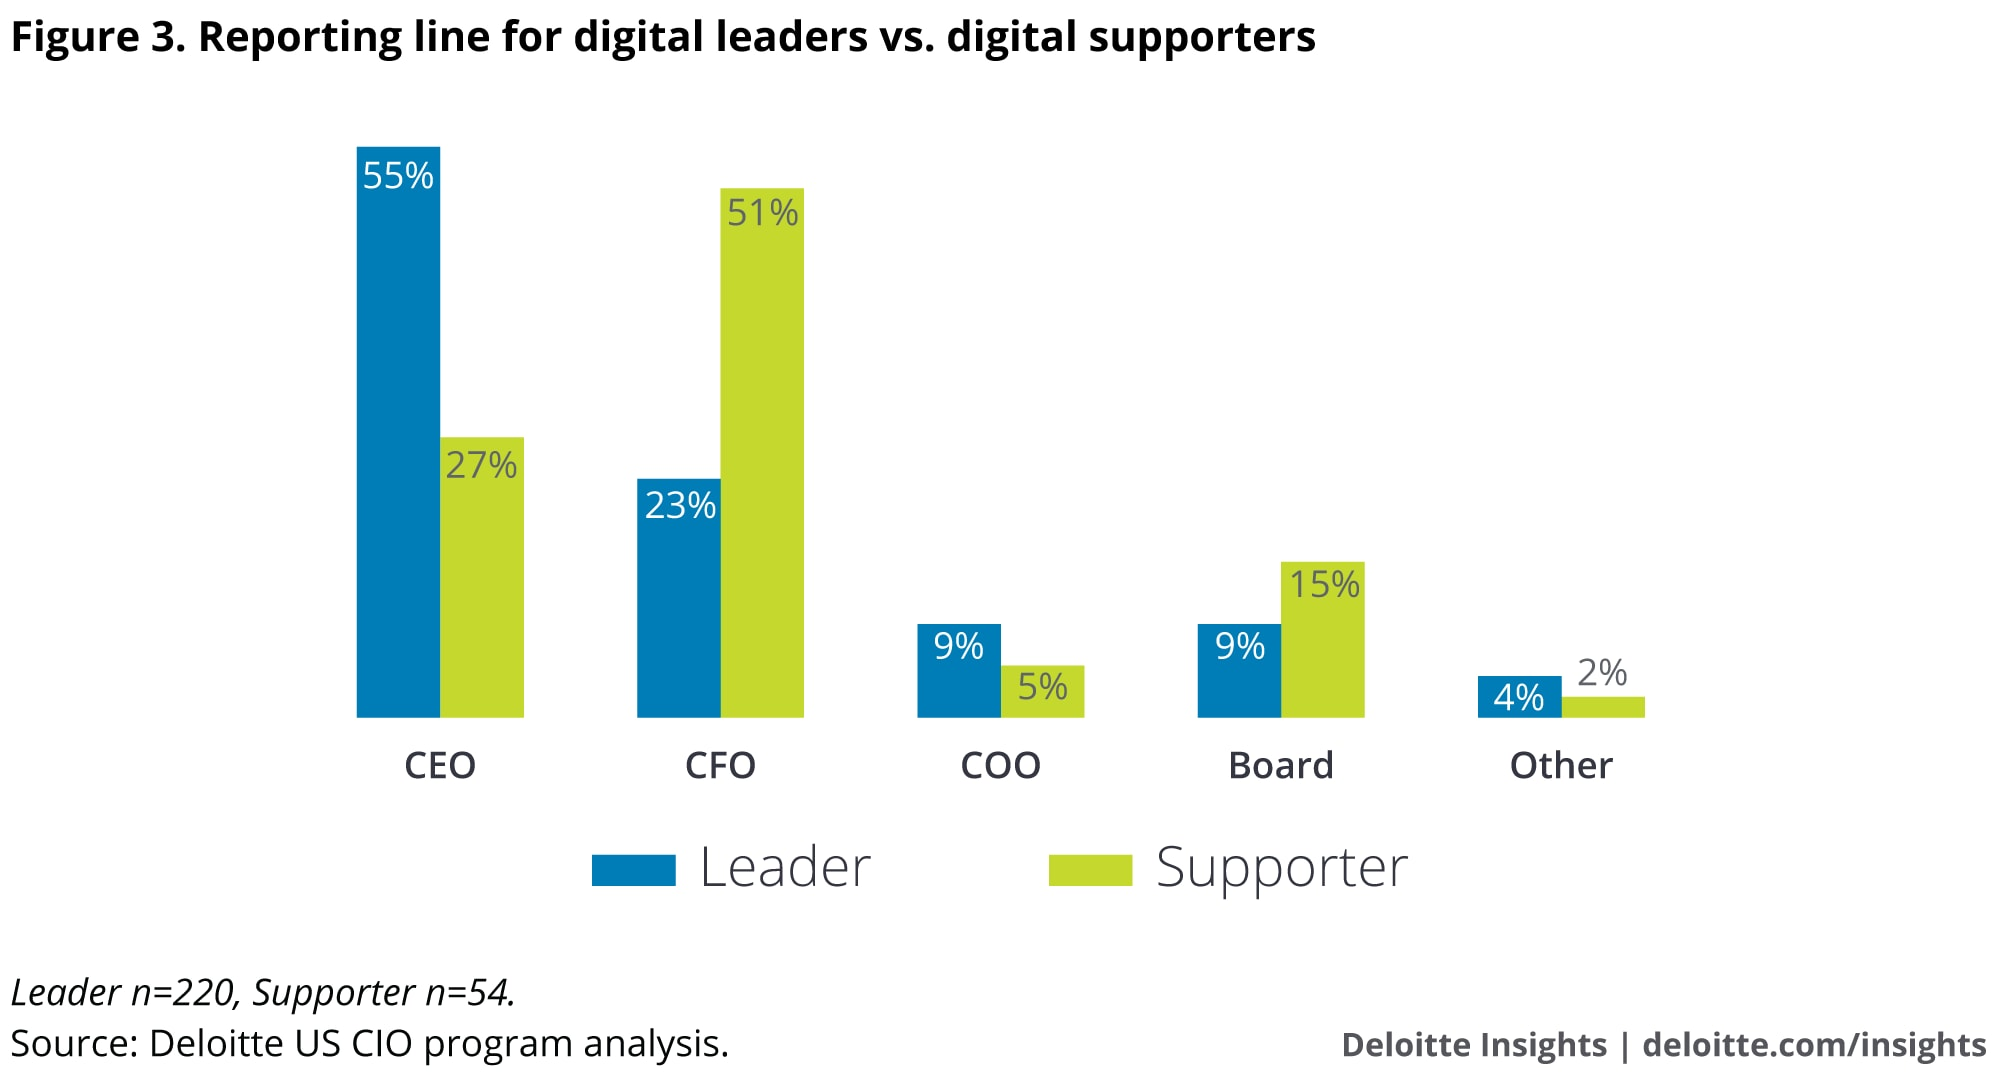 Reporting line for digital leaders vs. digital supporters